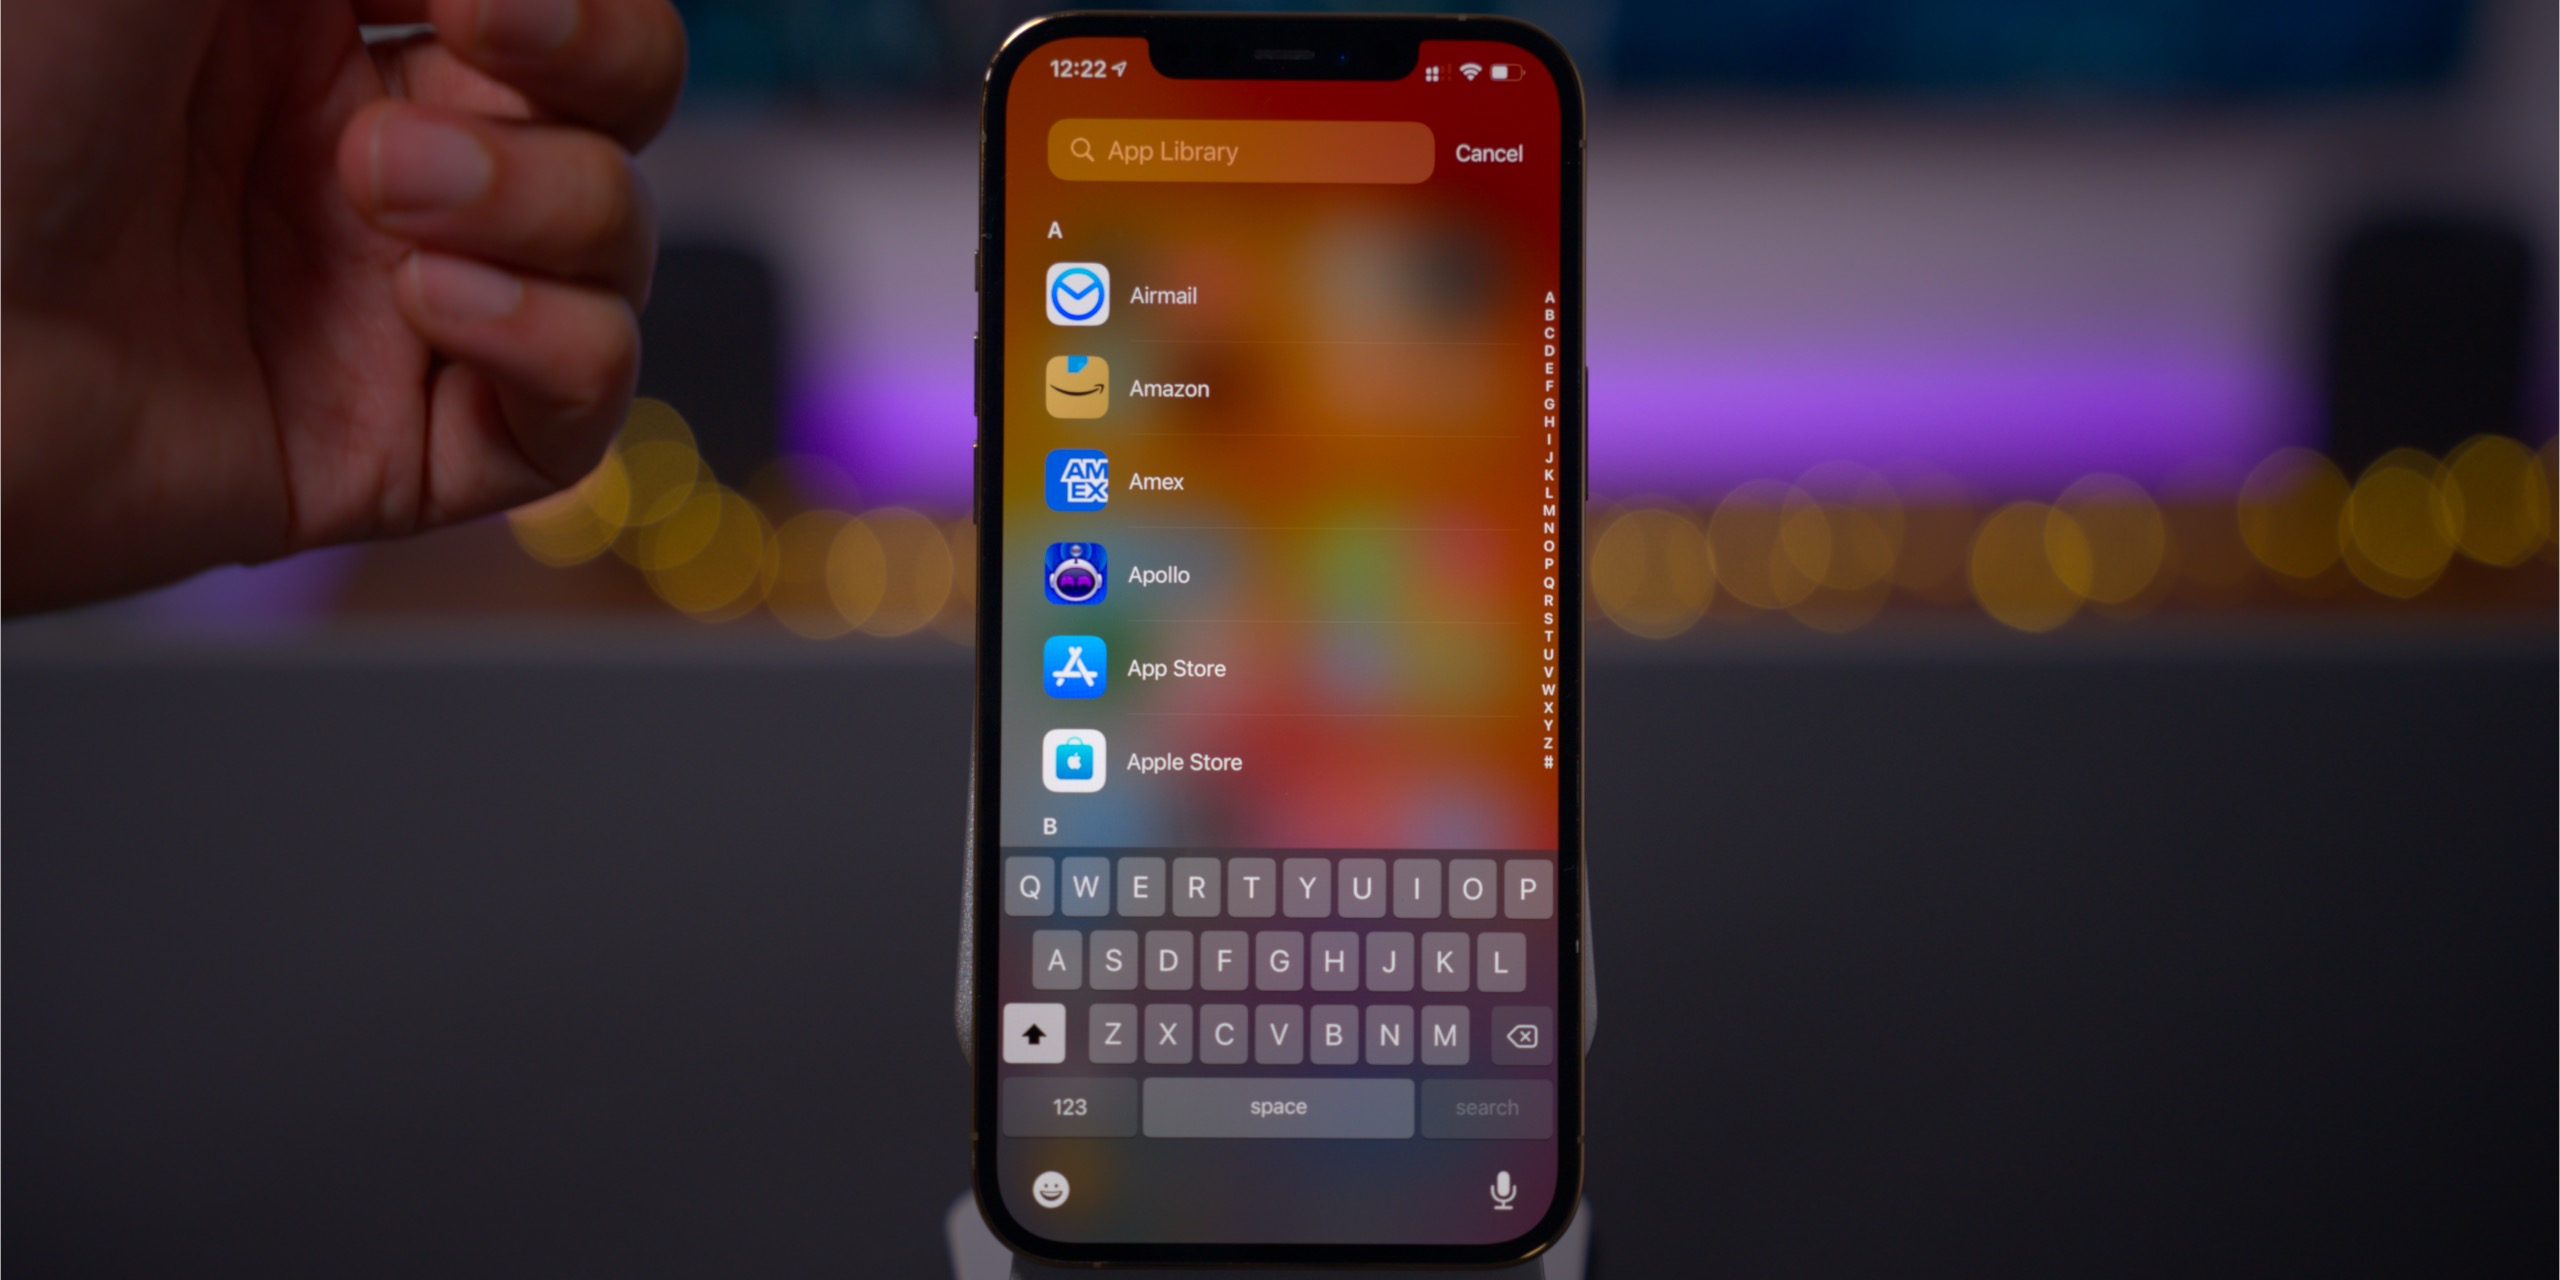 ios 14 rewind review app library list view